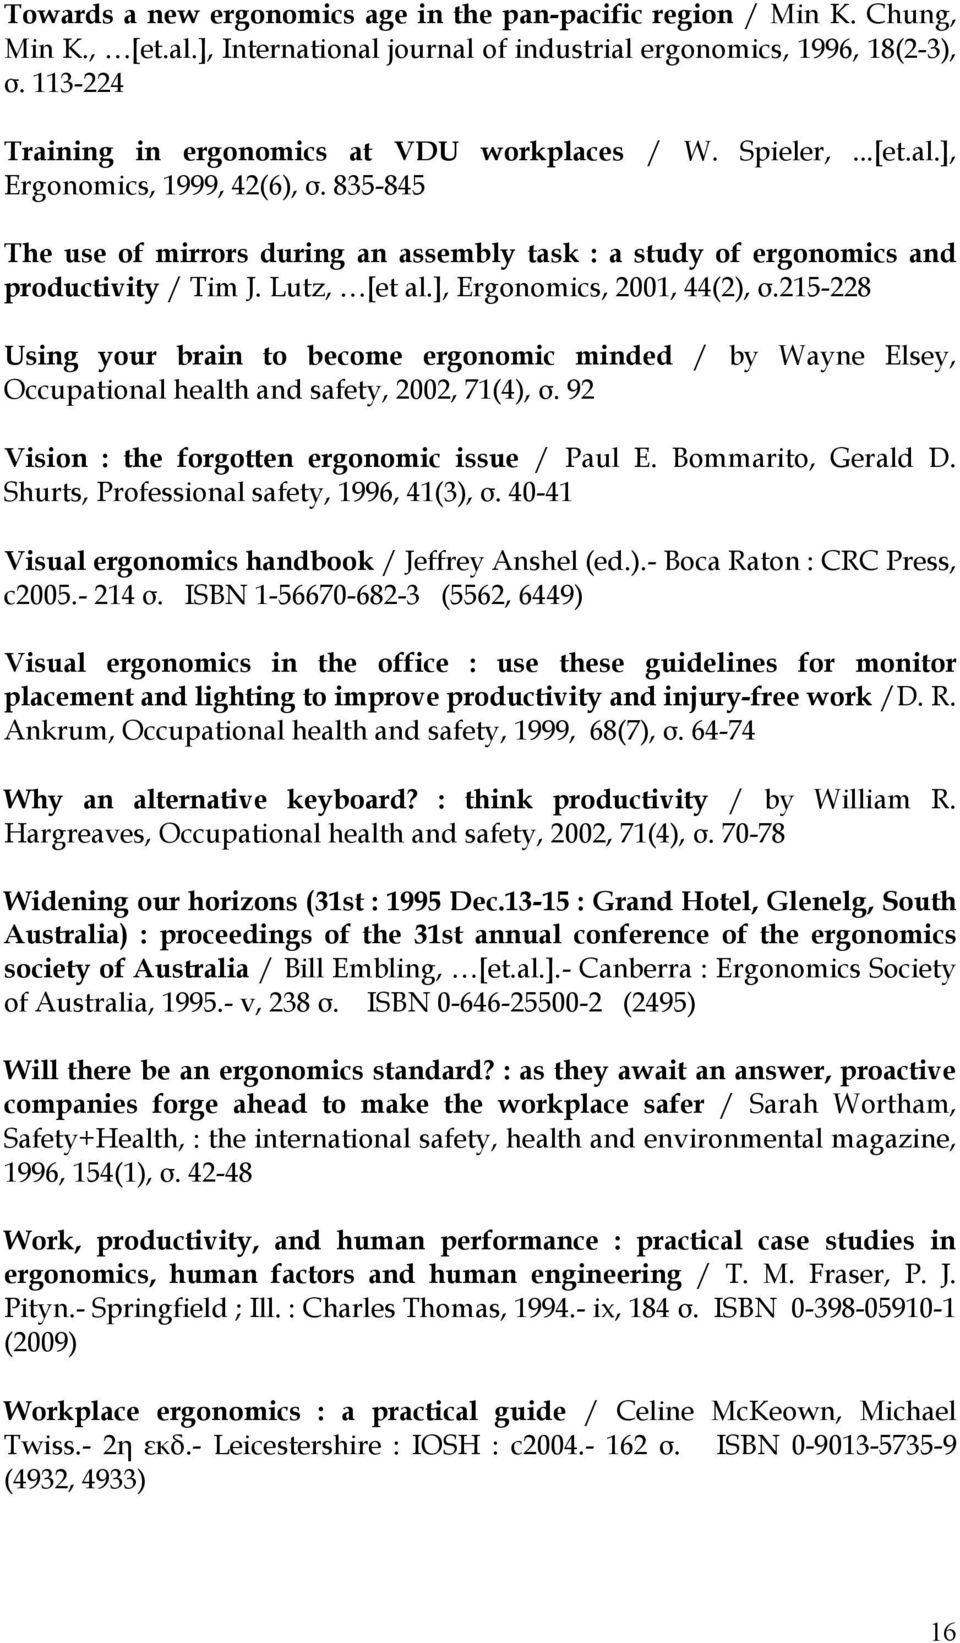 835-845 The use of mirrors during an assembly task : a study of ergonomics and productivity / Tim J. Lutz, [et al.], Ergonomics, 2001, 44(2), σ.